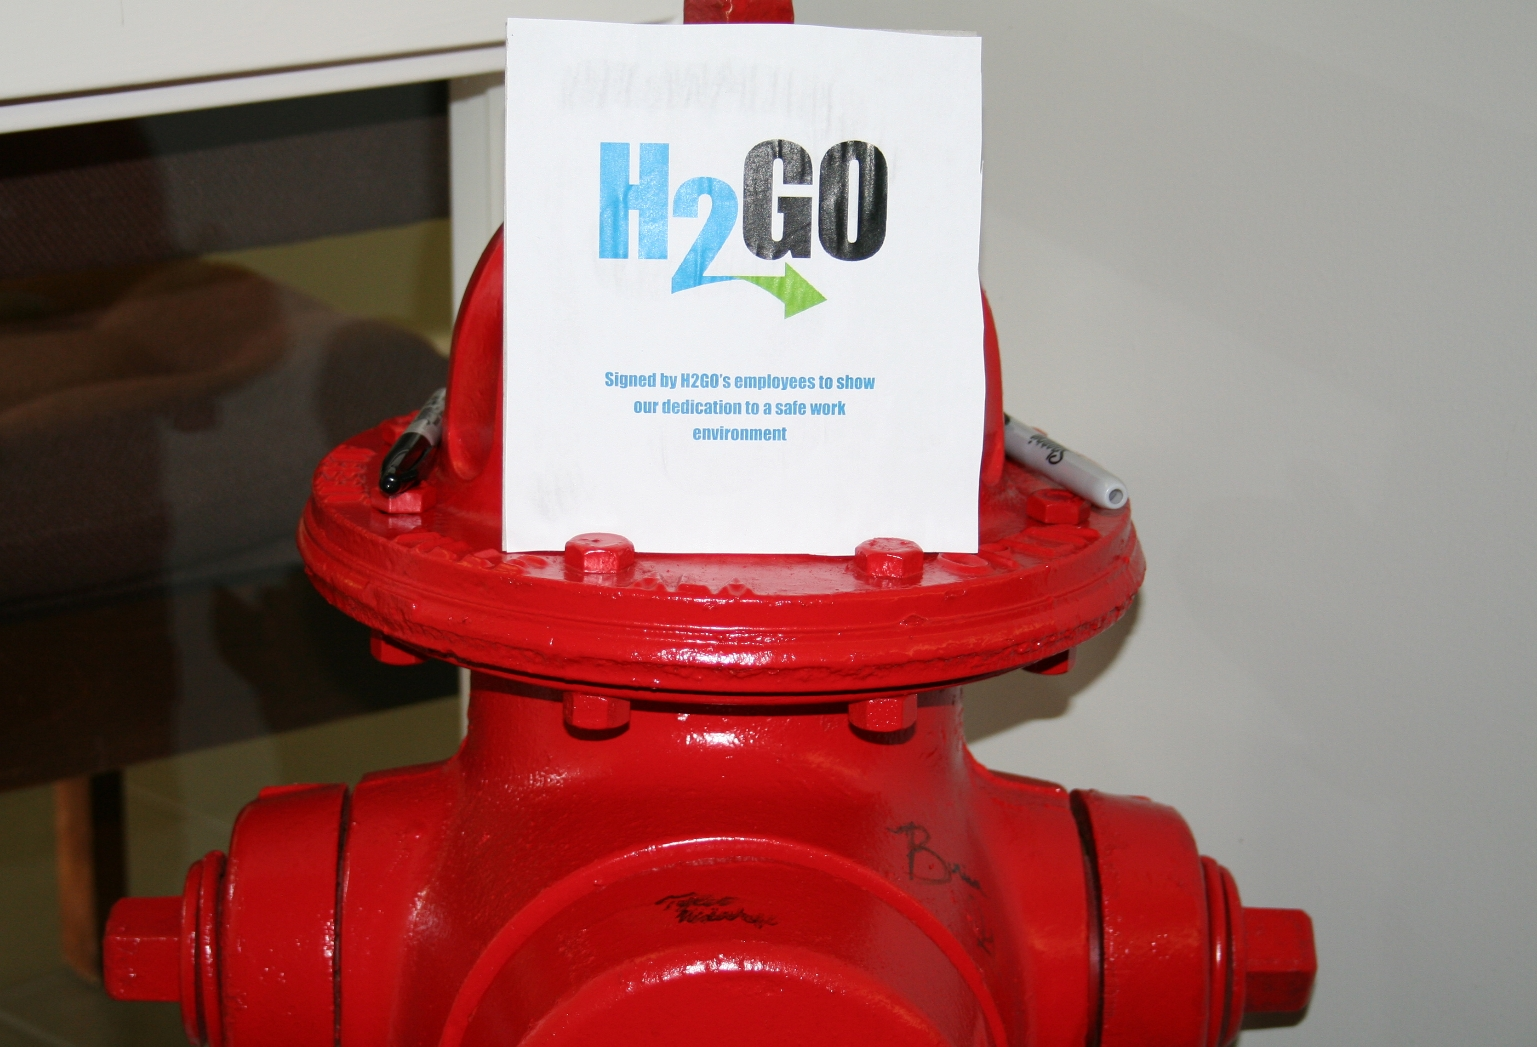 A fire hydrant signed by the H2Go staff.